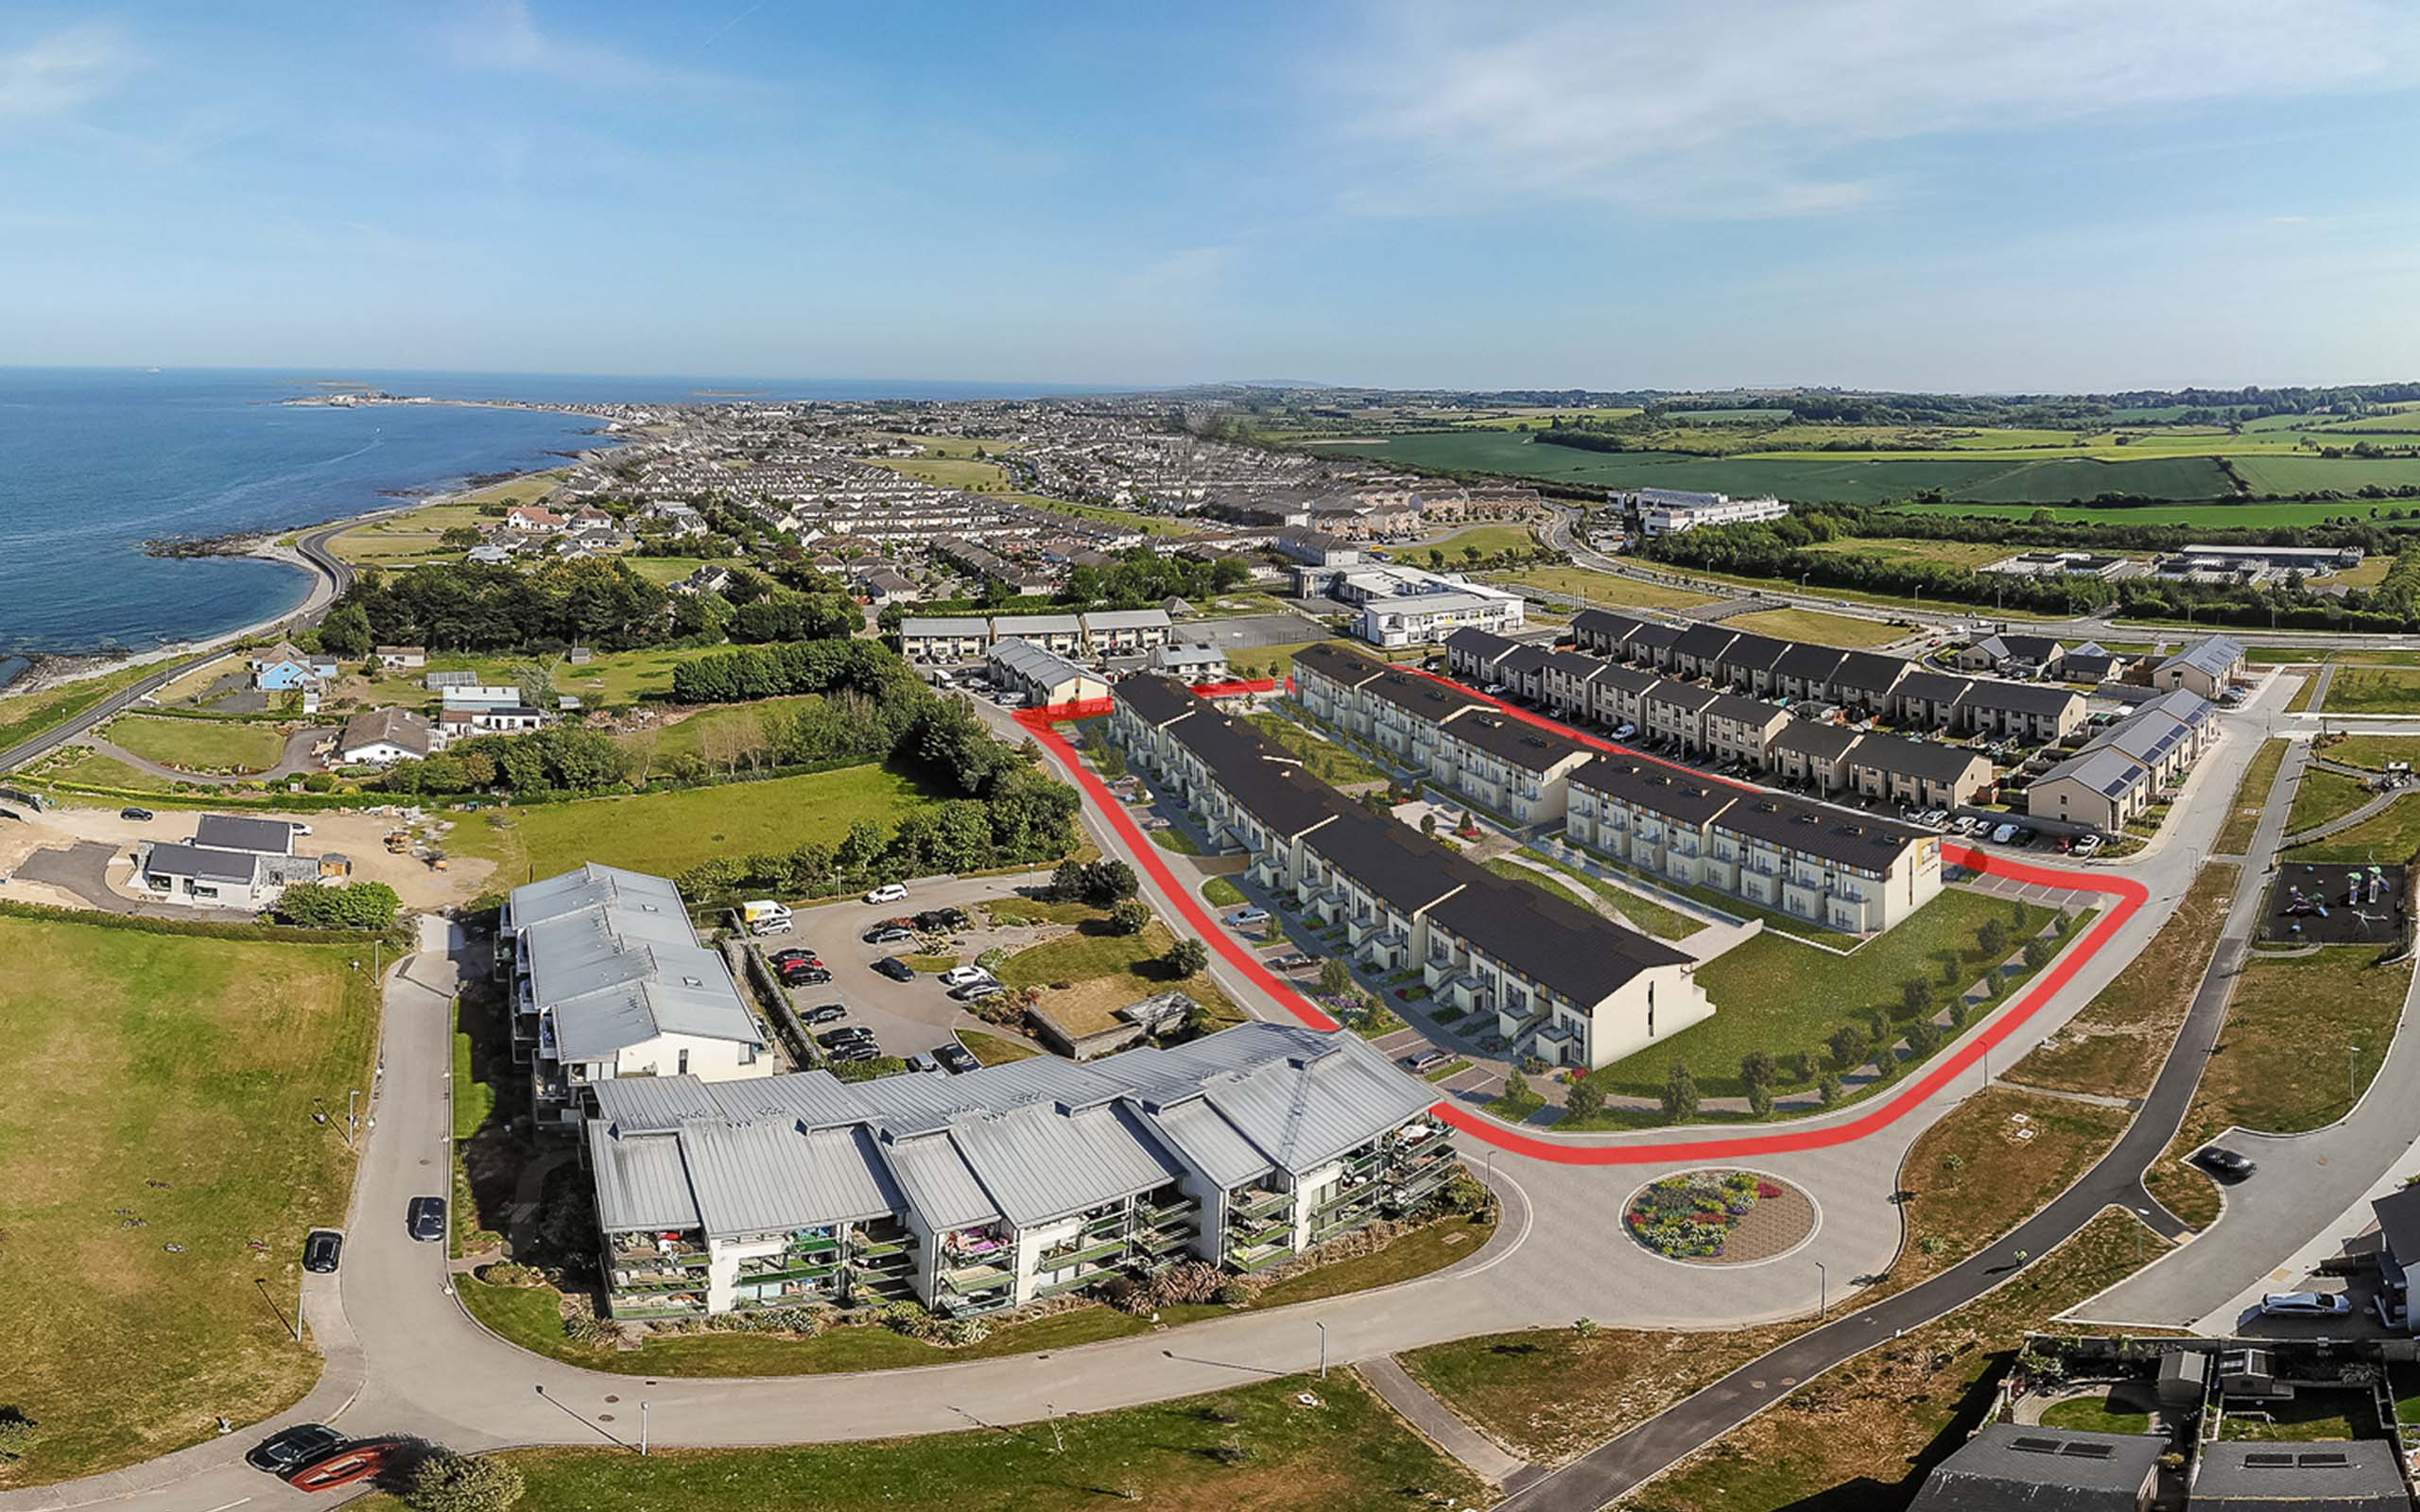 Aerial CGI of Architectural CGI of Apartments in Barnageeragh Cove in Skerries, North County Dublin.